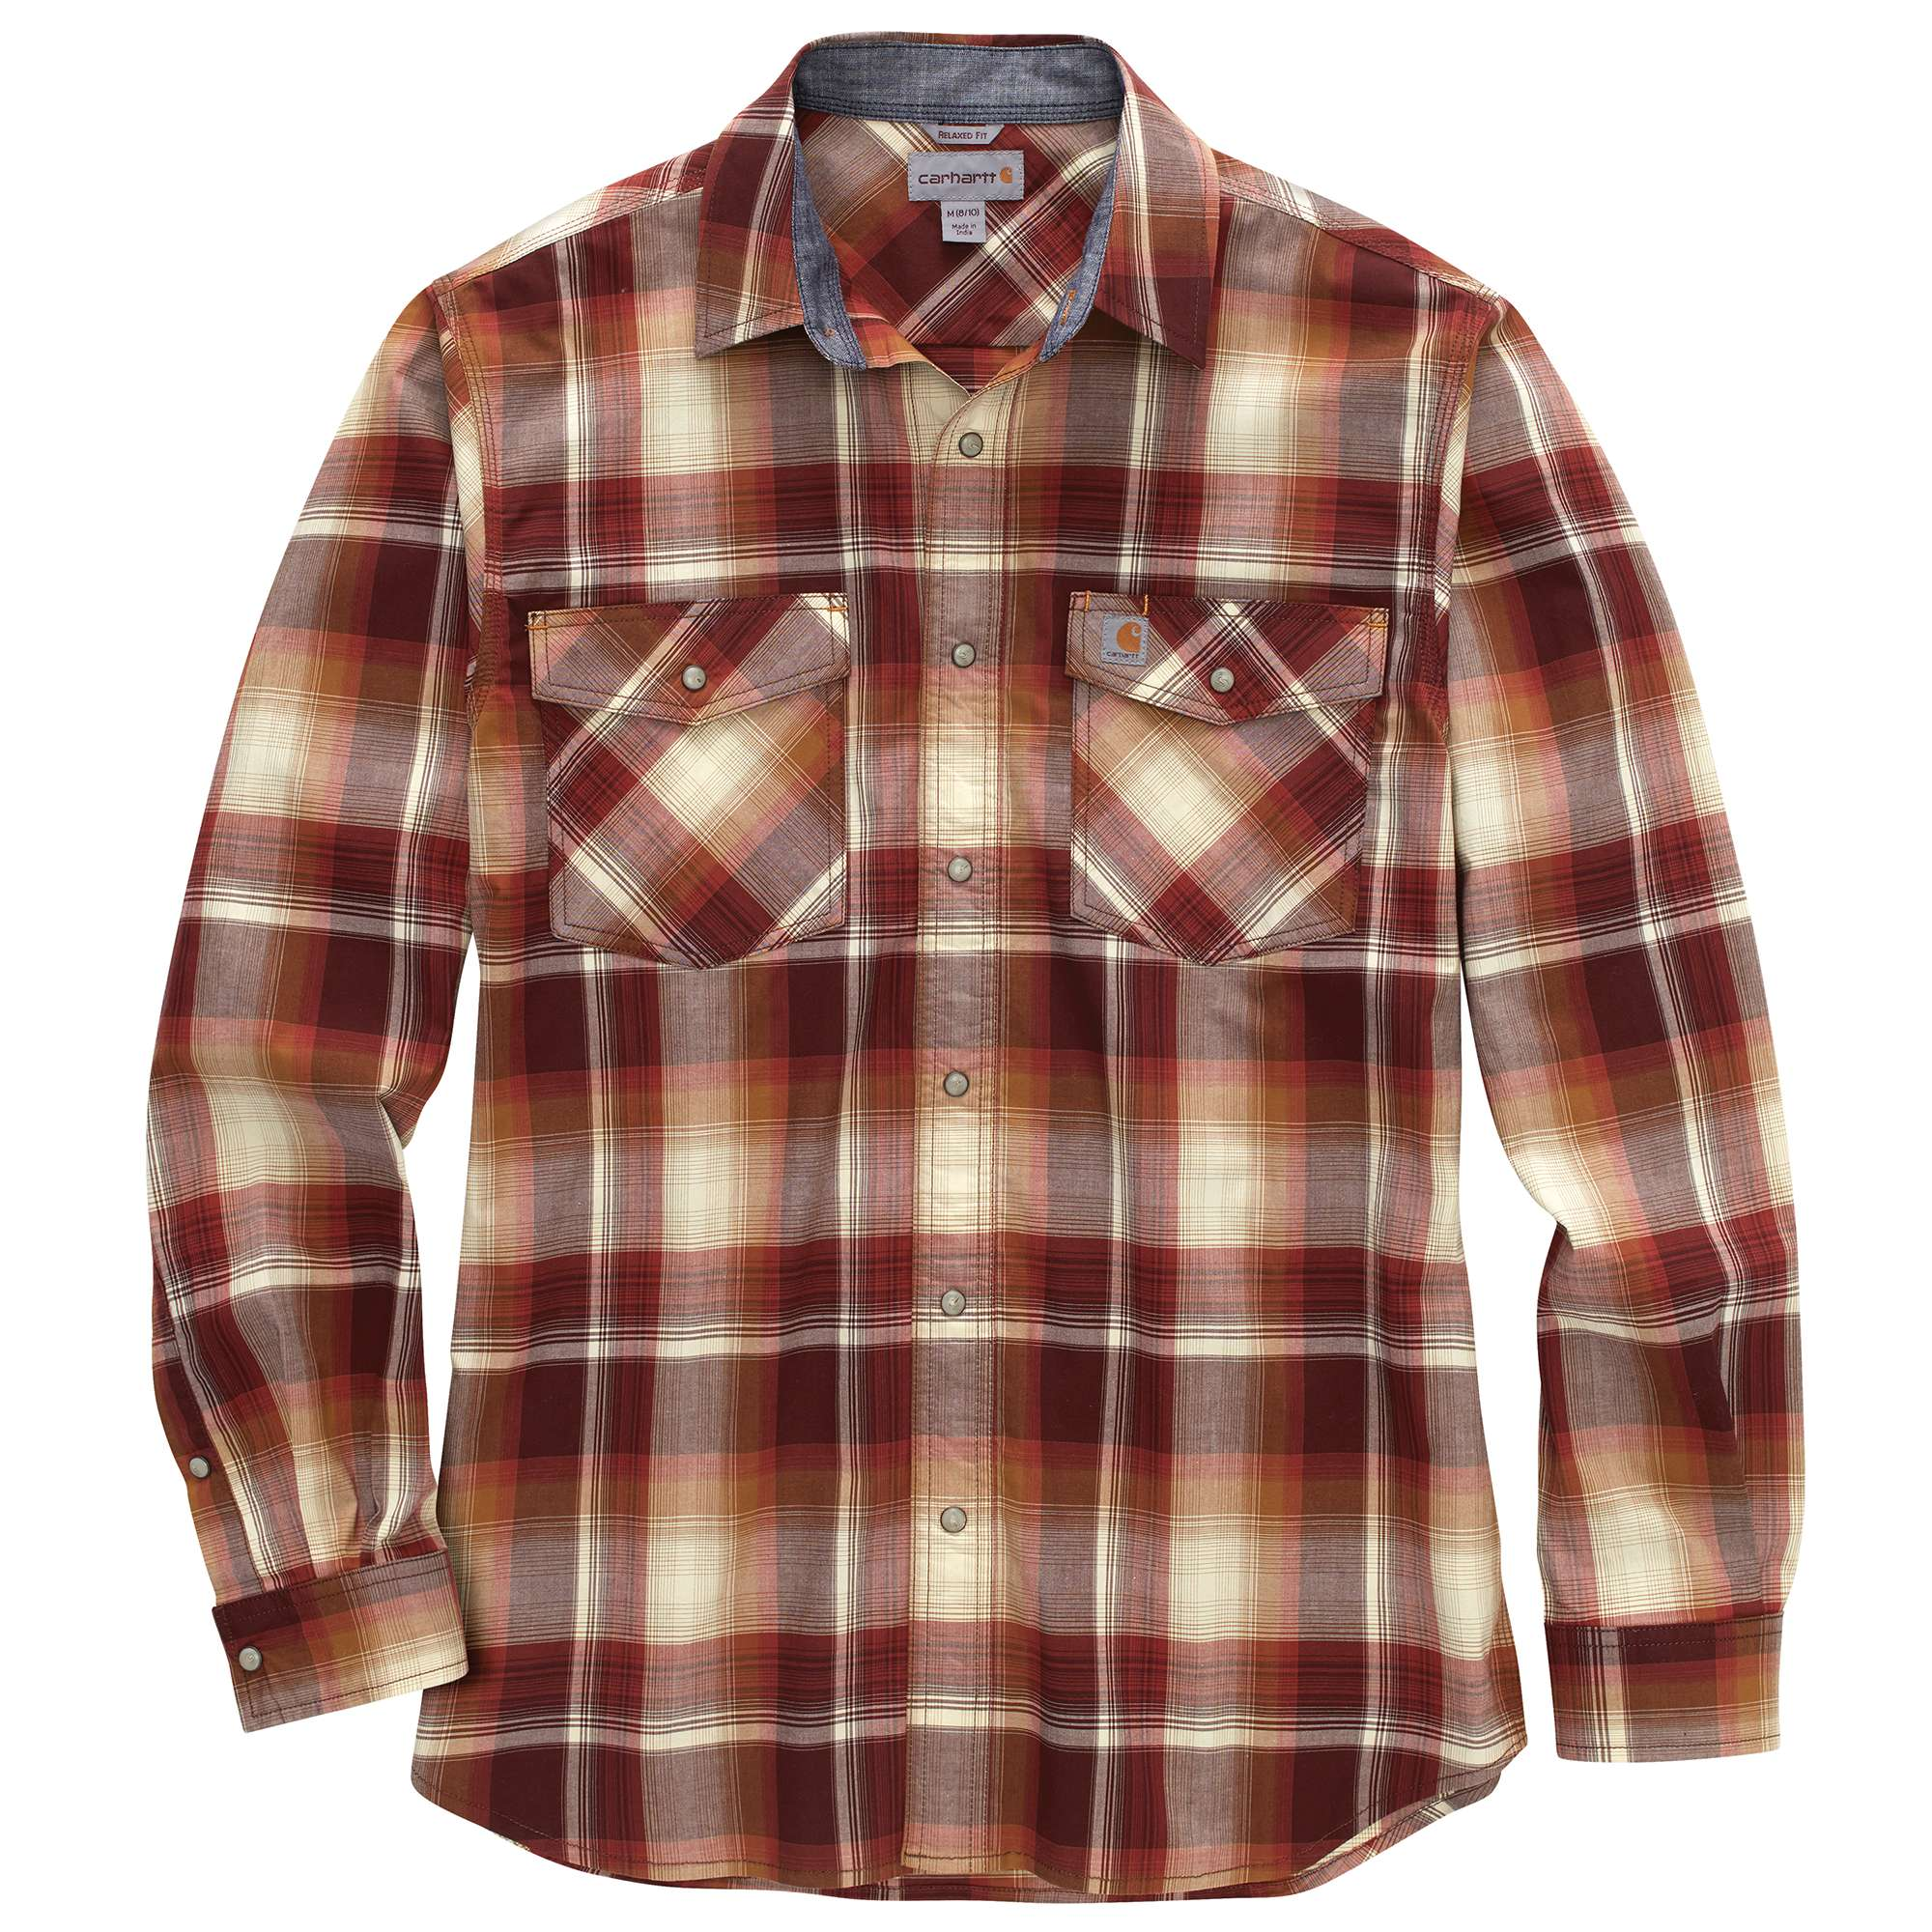 Carhartt Rugged Flex Relaxed Fit Lightweight Long-Sleeve Snap-Front Plaid Shirt